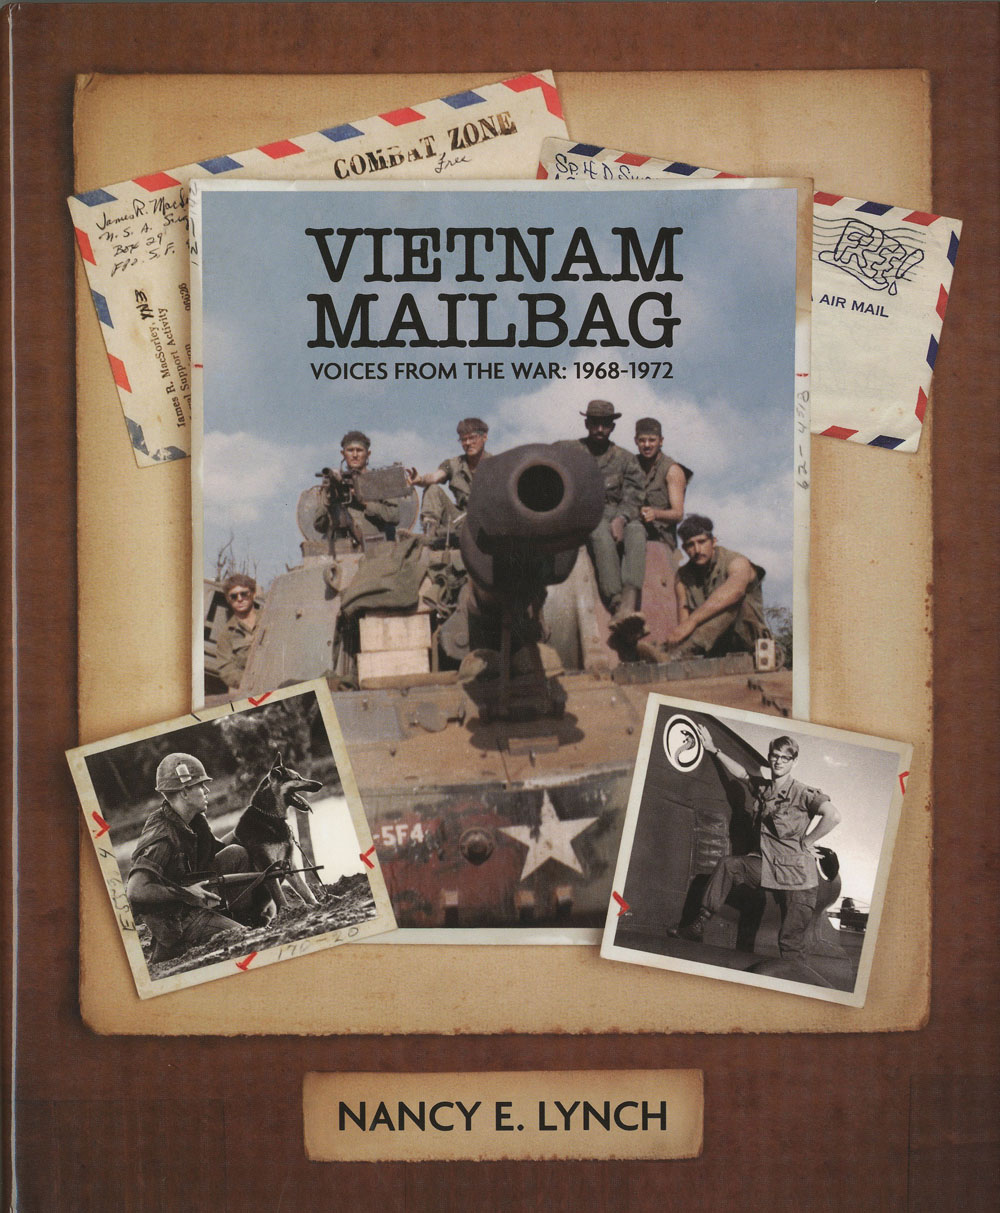 Vietnam Mailbag, Voices from the War: 1968-1972, by Nancy E. Lynch, 2008, 456 pp., Hardcover. Prices reflect the cost of the book PLUS S&H fee of $7.50.